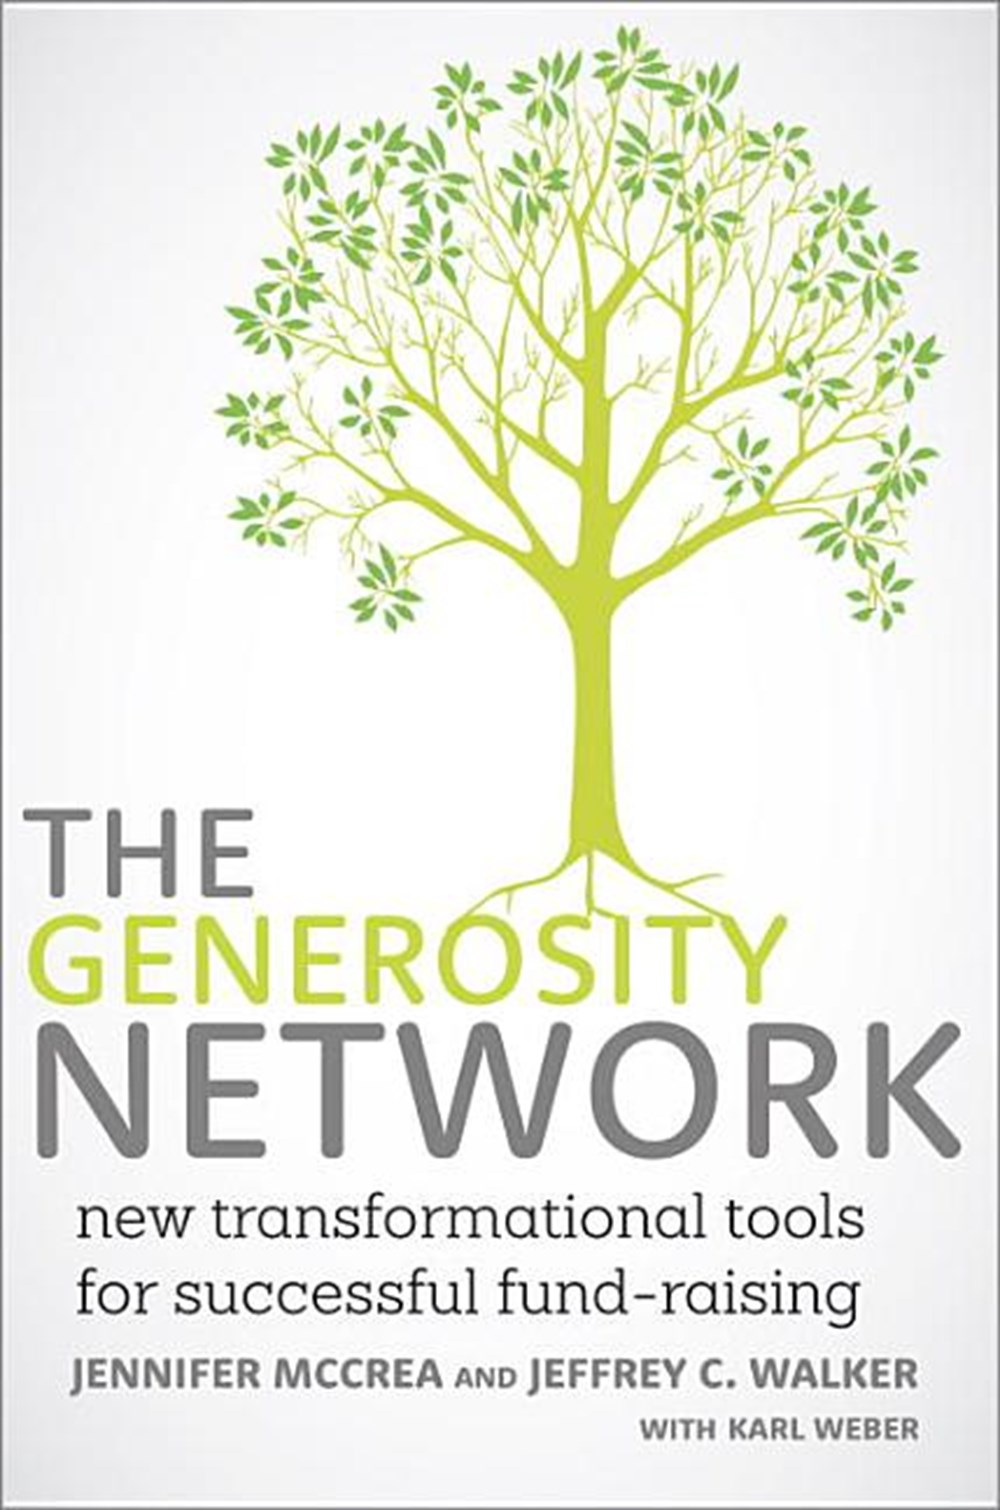 Generosity Network New Transformational Tools for Successful Fund-Raising